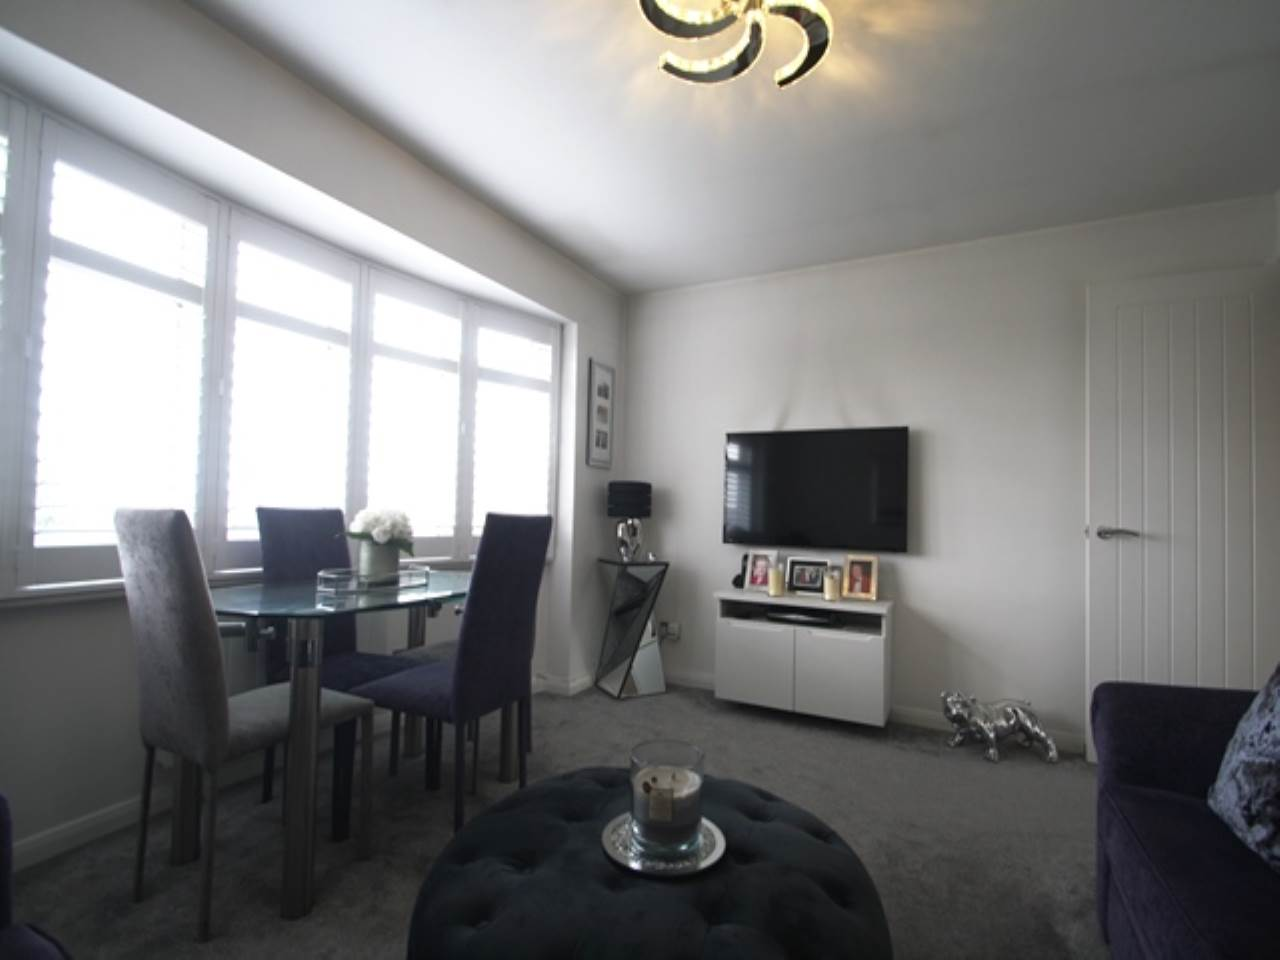 1 bed flat to rent in Ilford, IG2